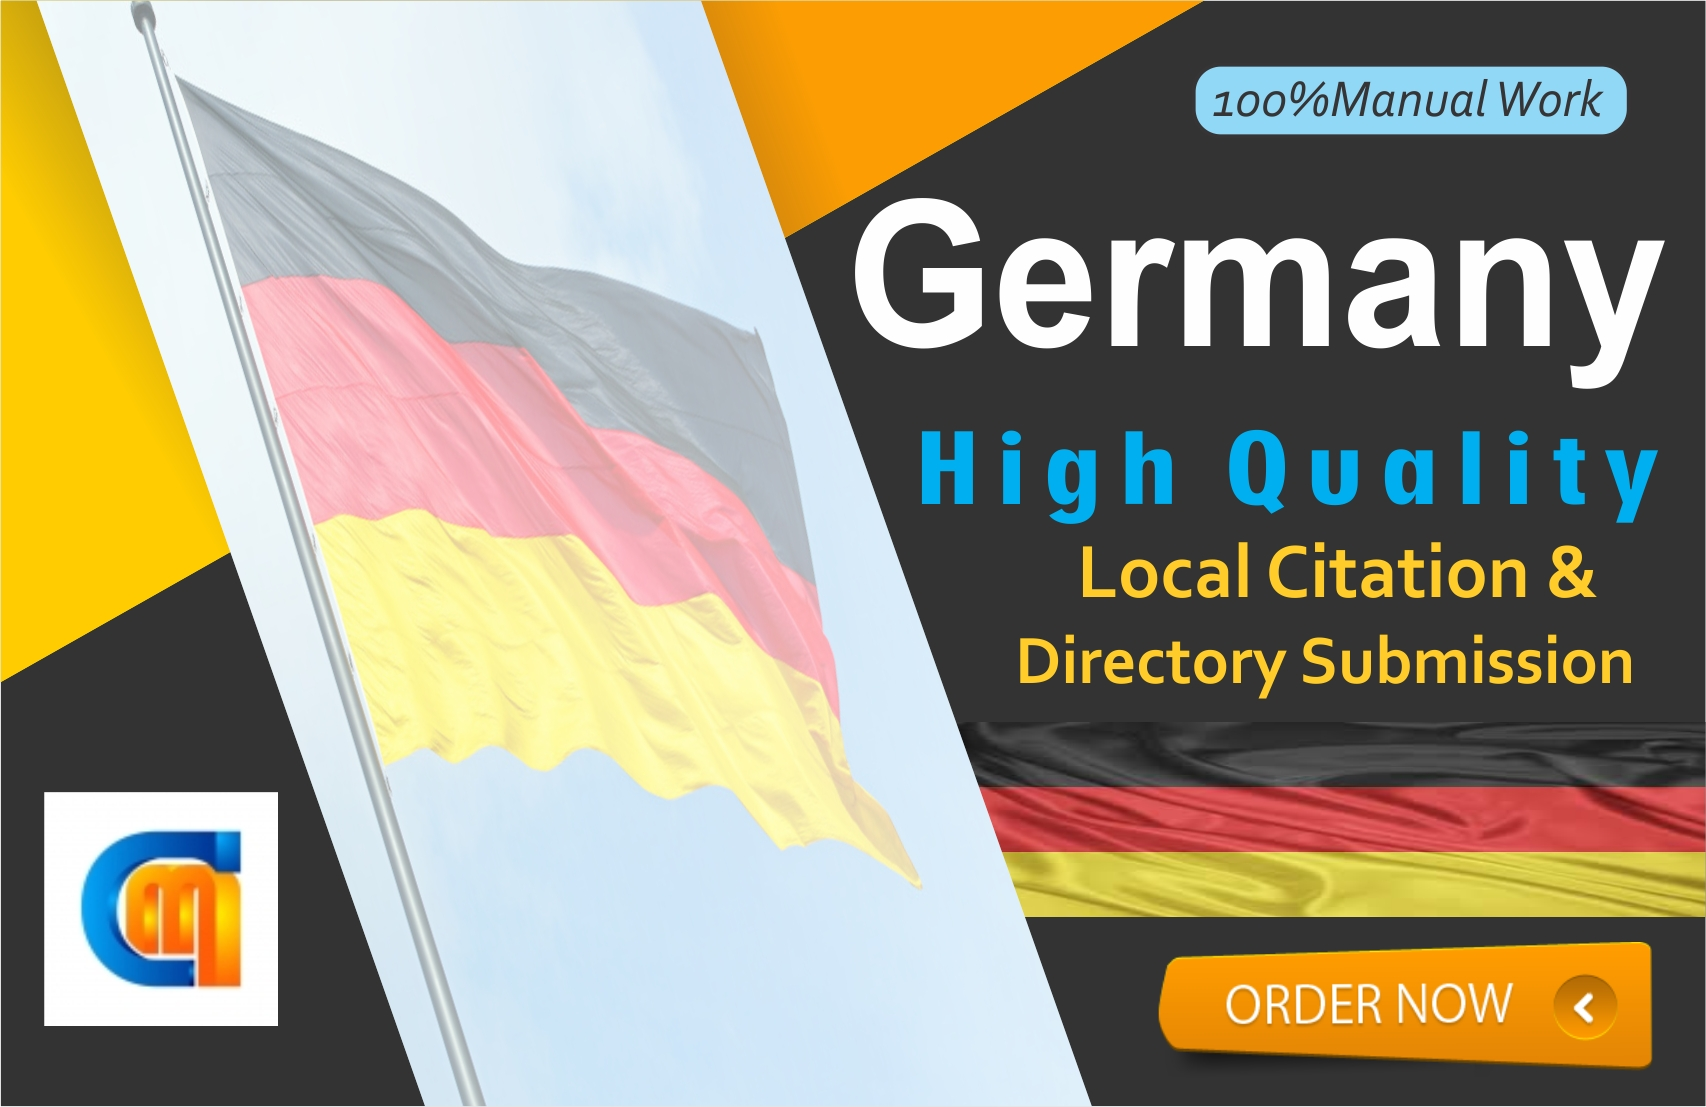 I will do200 germany local citations for your business